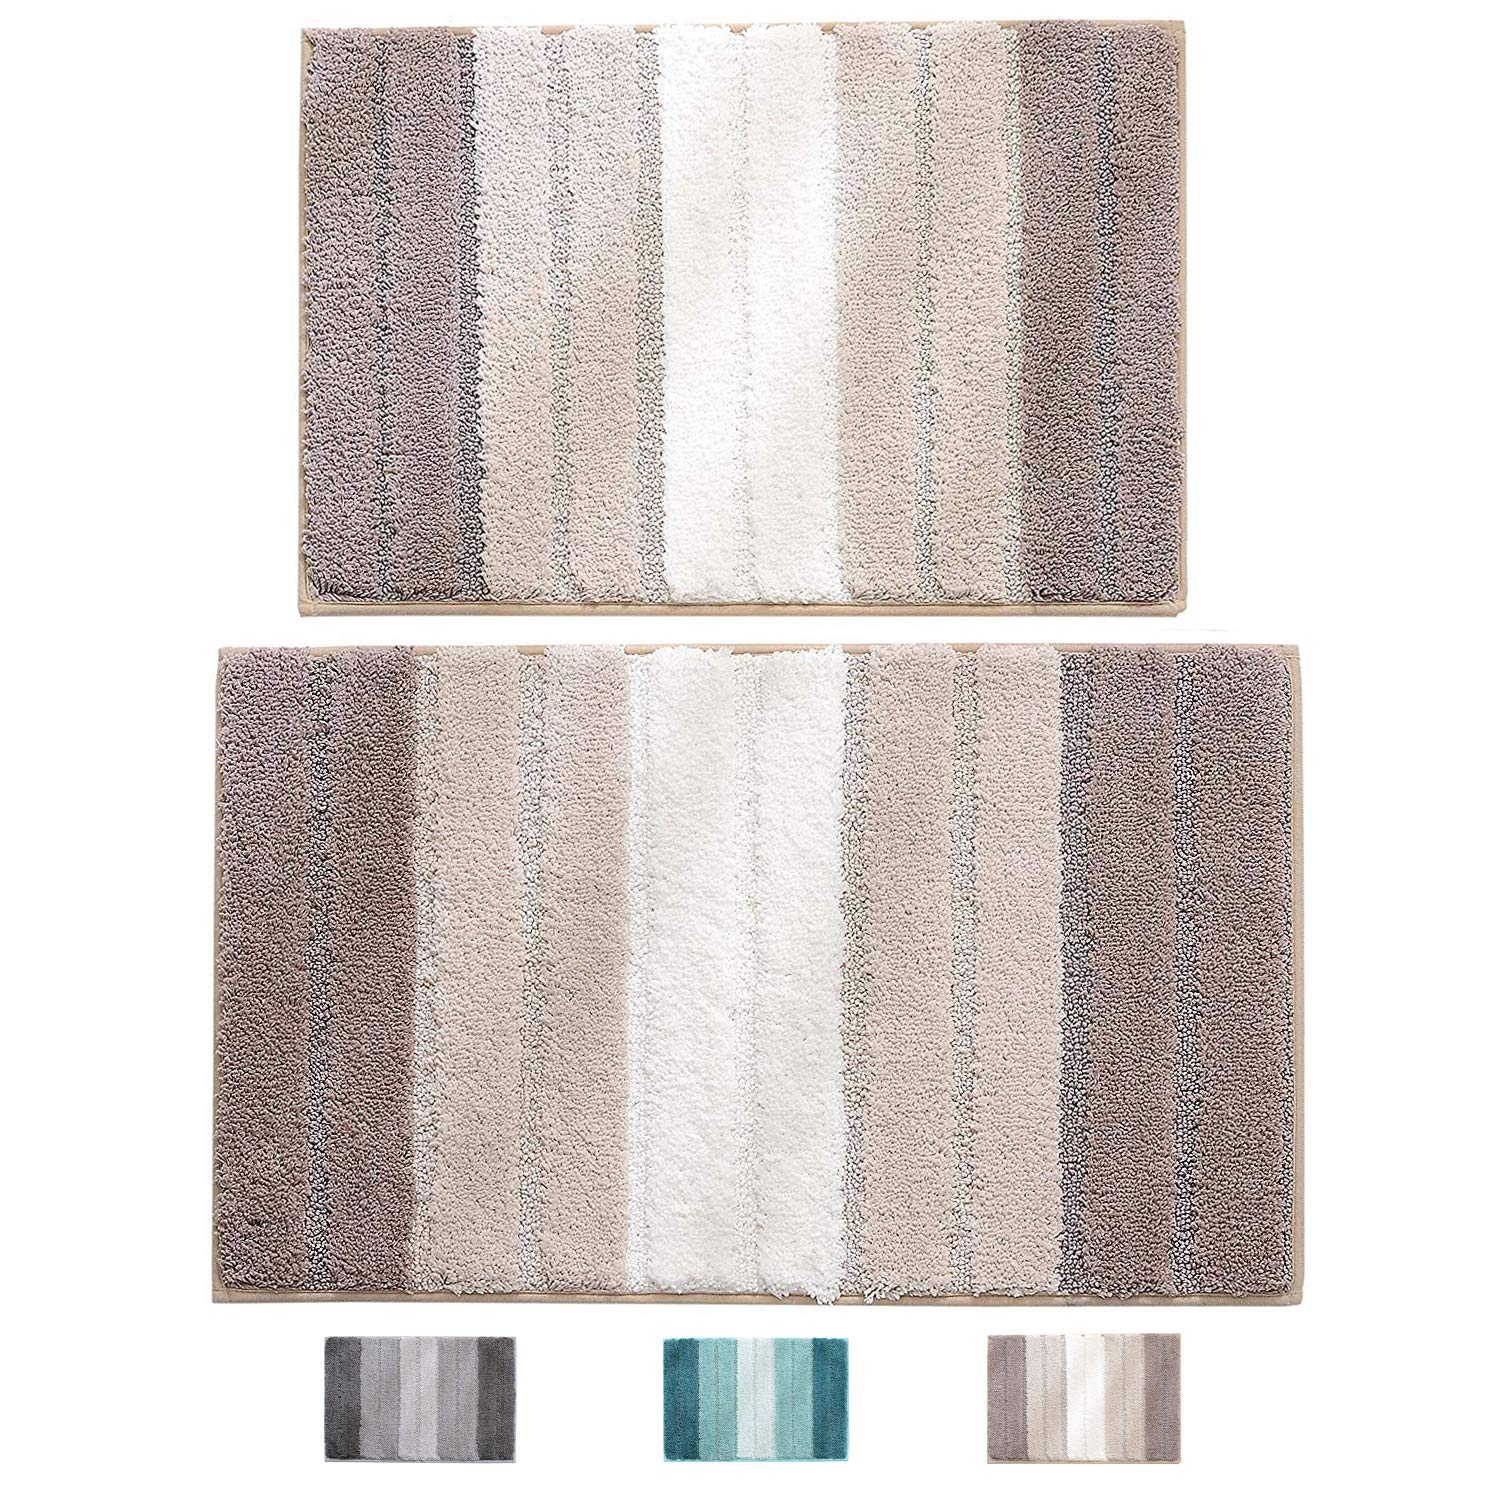 "wovwvool Bathroom Rugs Plush mat Polyester Microfiber Non-Slip,Soft,Absorbent and Machine (20""×32"" and 18""×26"" Brown)"